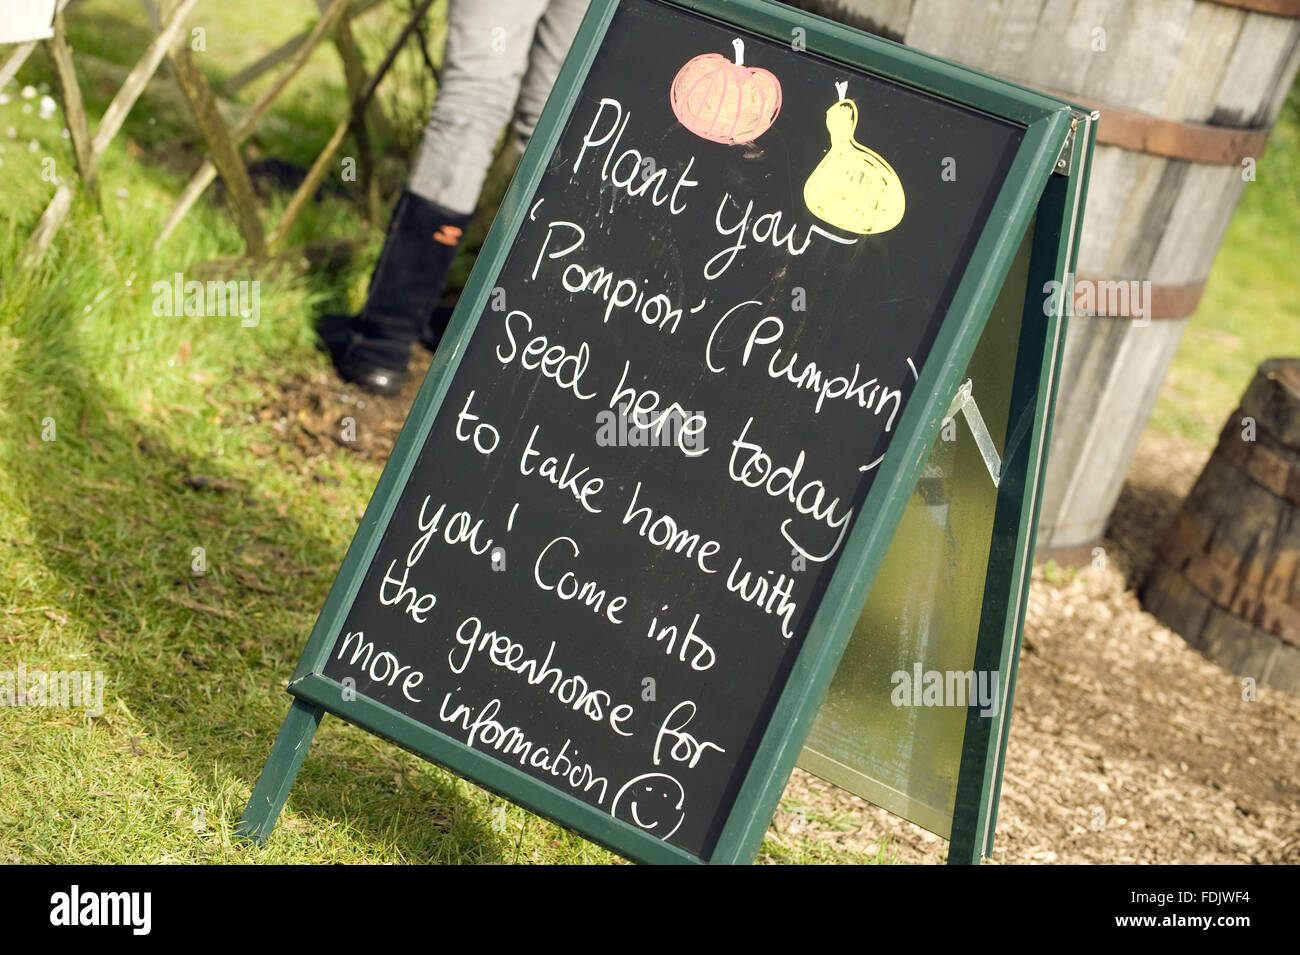 Sign about planting your own pumpkin seeds at Trerice, Cornwall, part of a Food Glorious Food event. - Stock Image